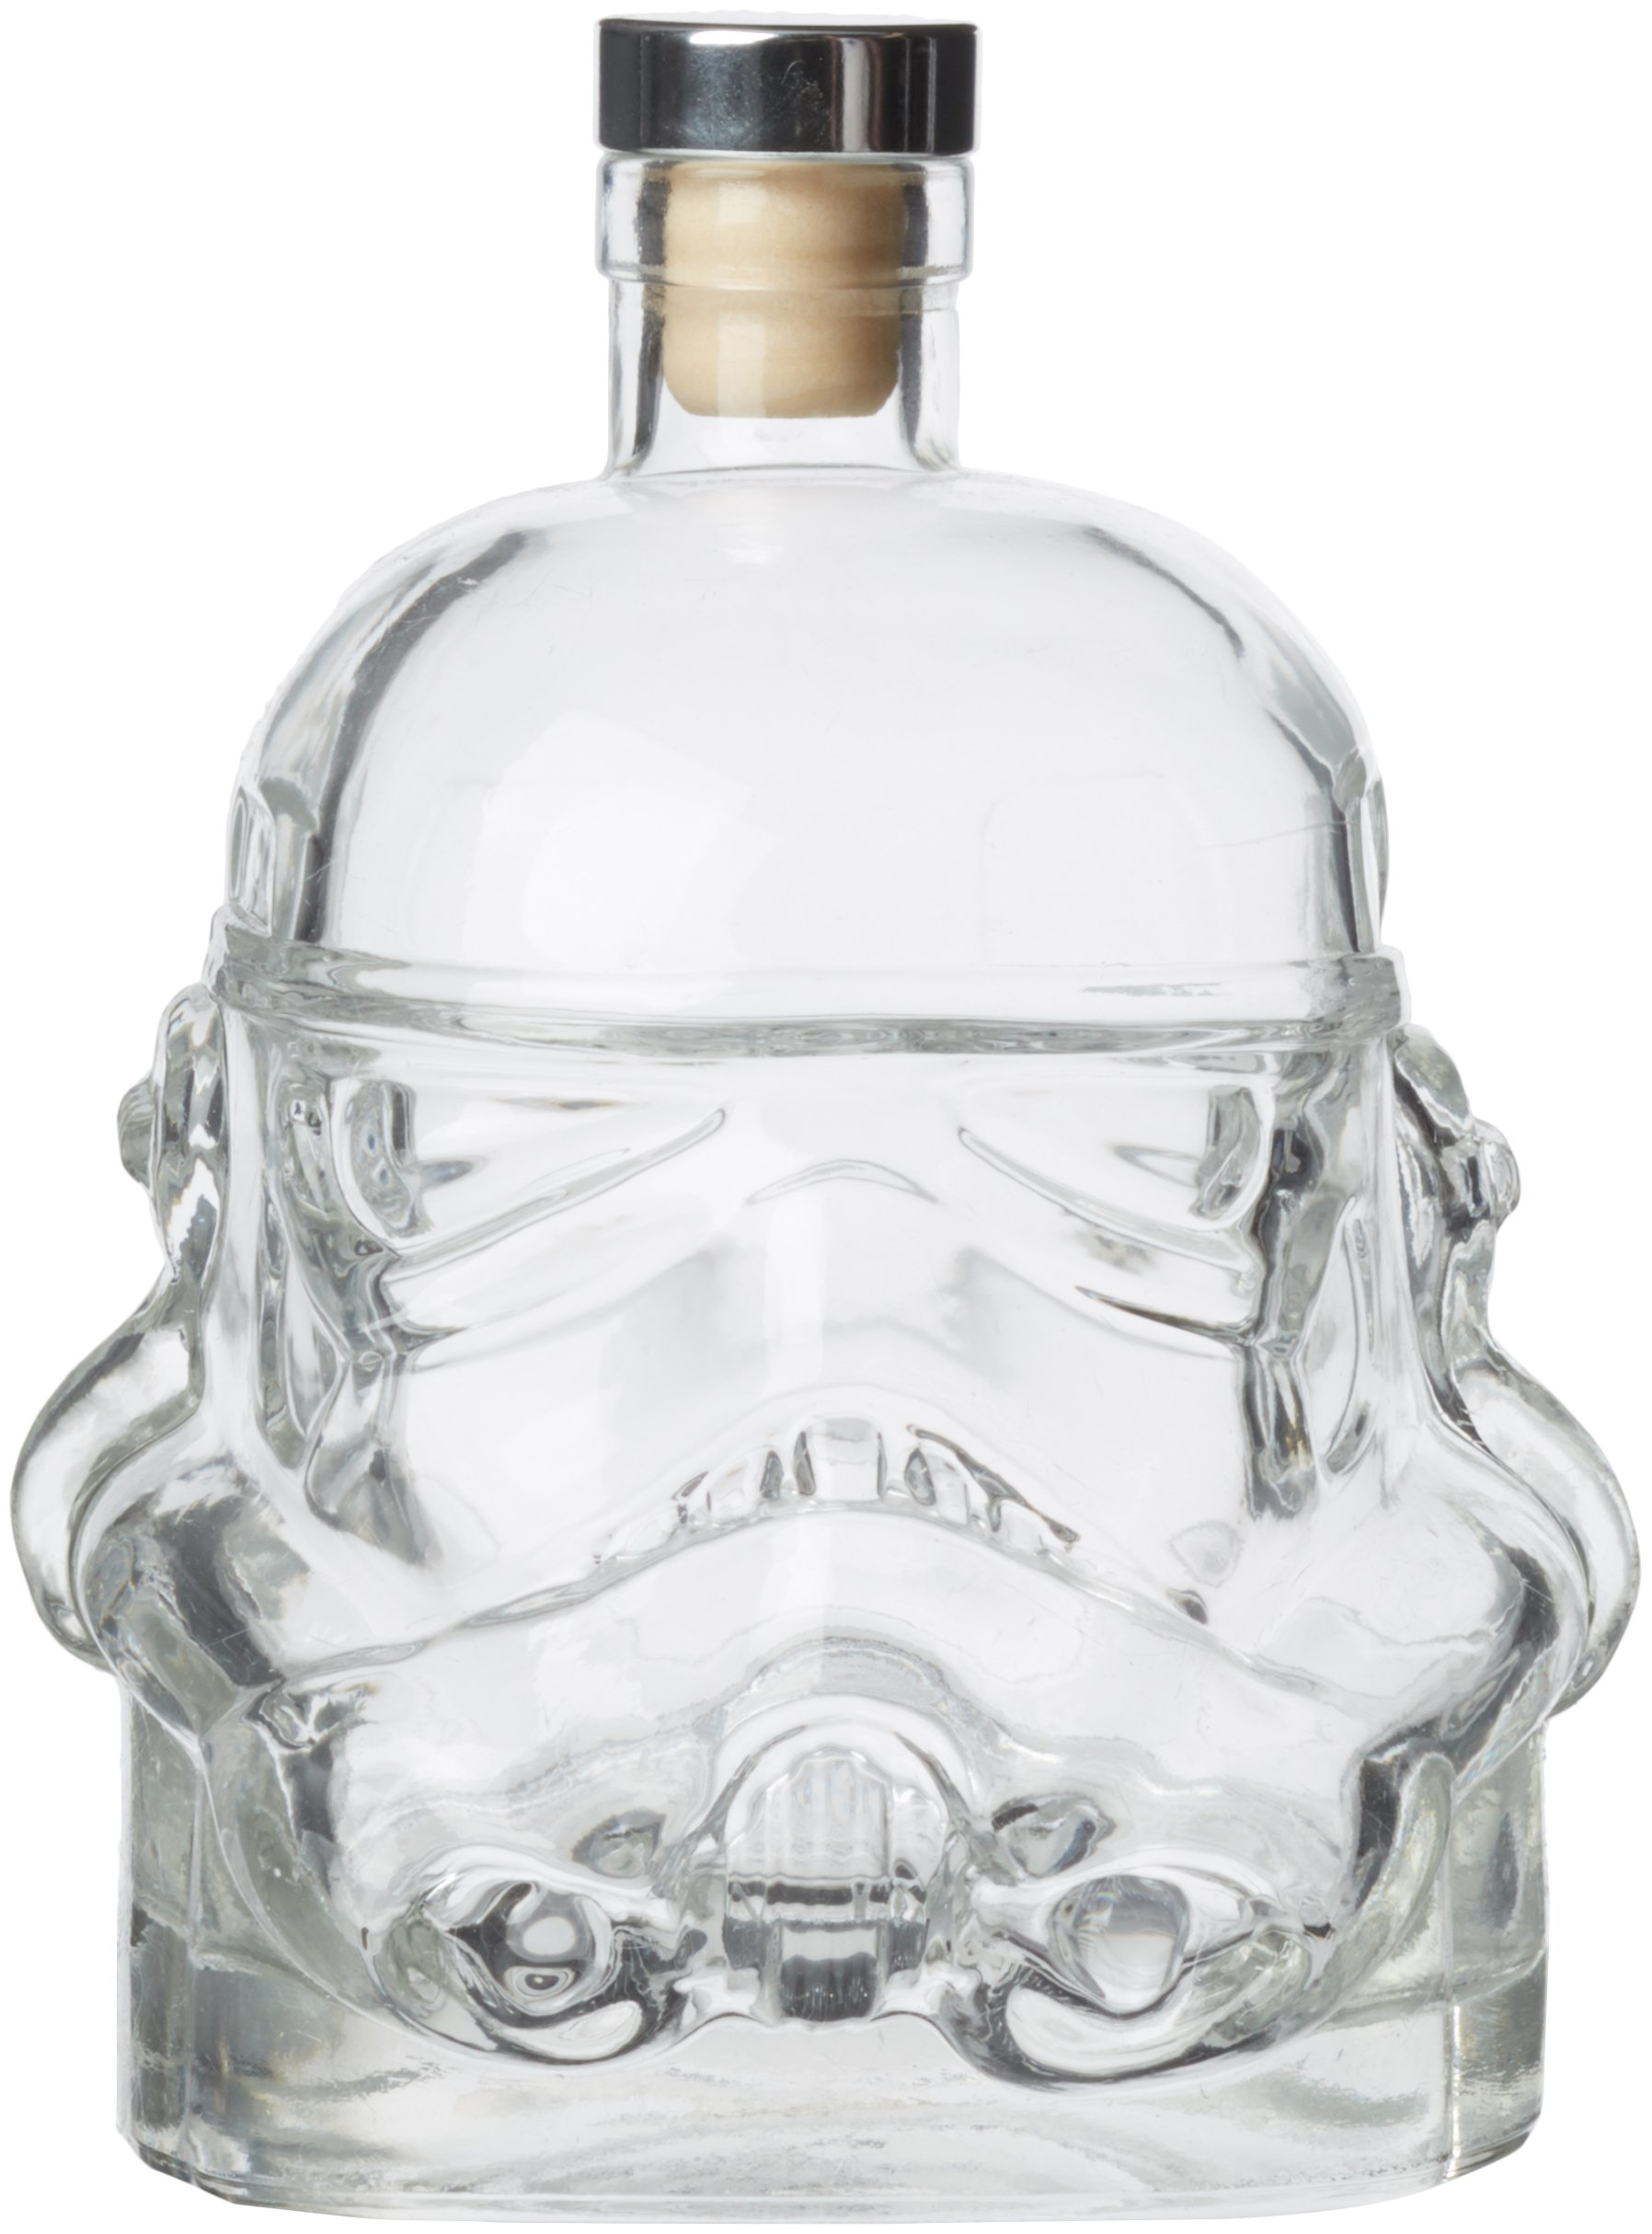 Stormtrooper Star Wars Decanter Rogue One The Force Awakens Helmet Clear Glass